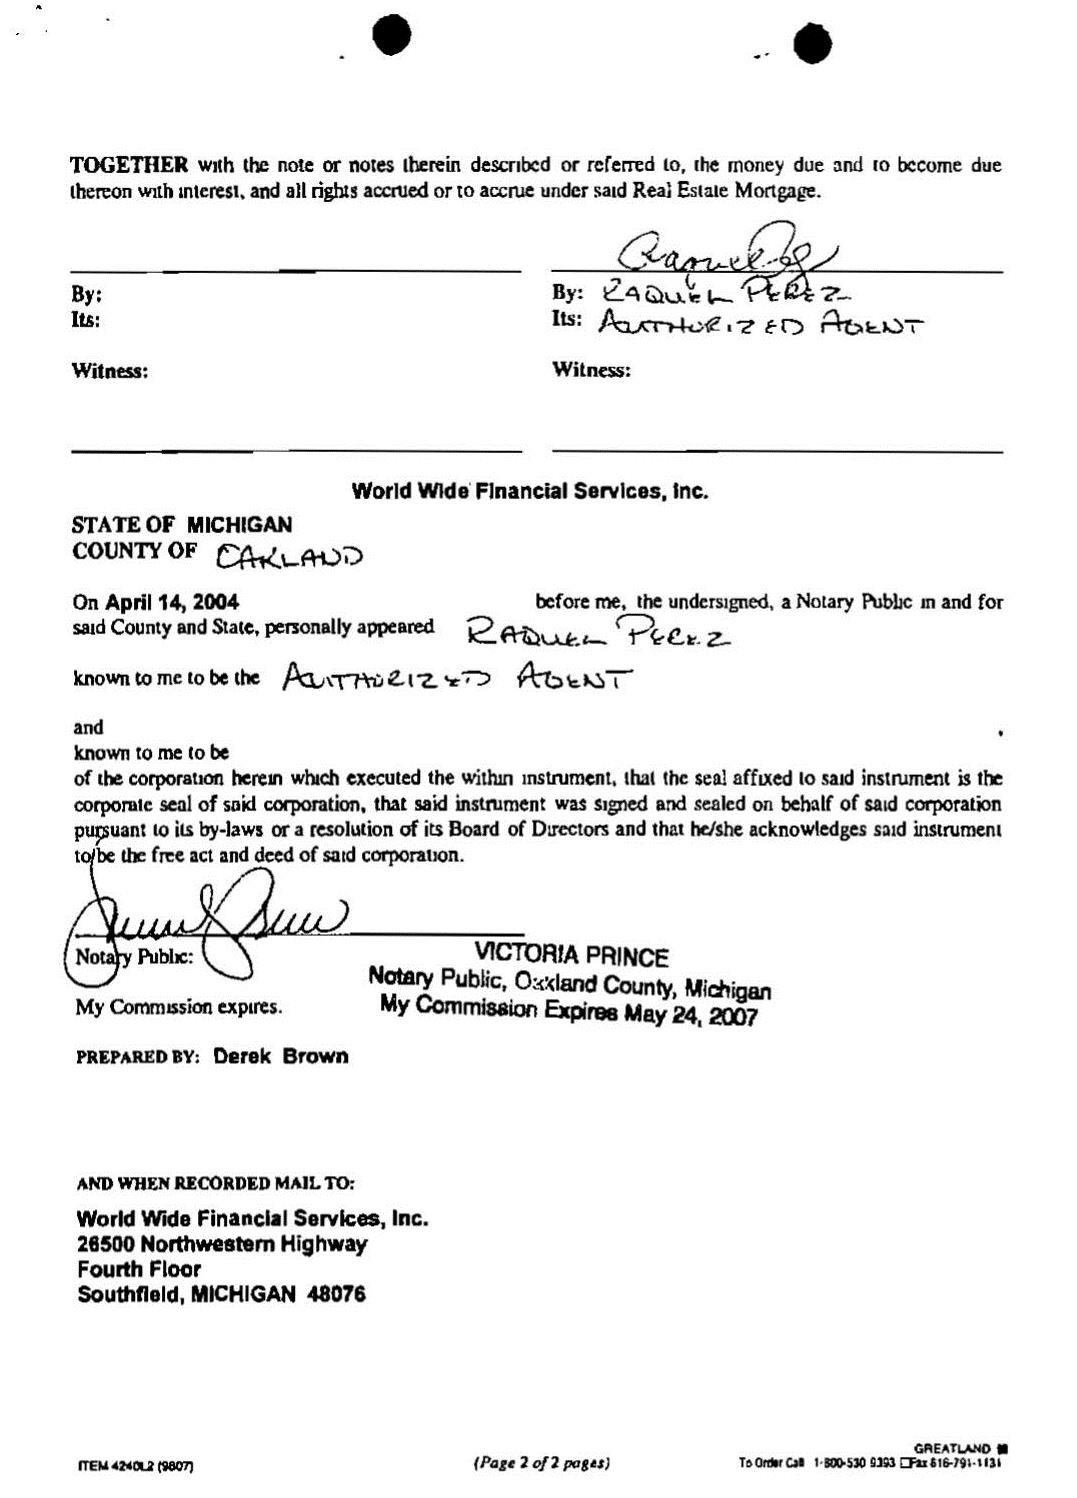 Good Assignment Sent To Our Former Attorney On 09 20 2006 (Page 2)